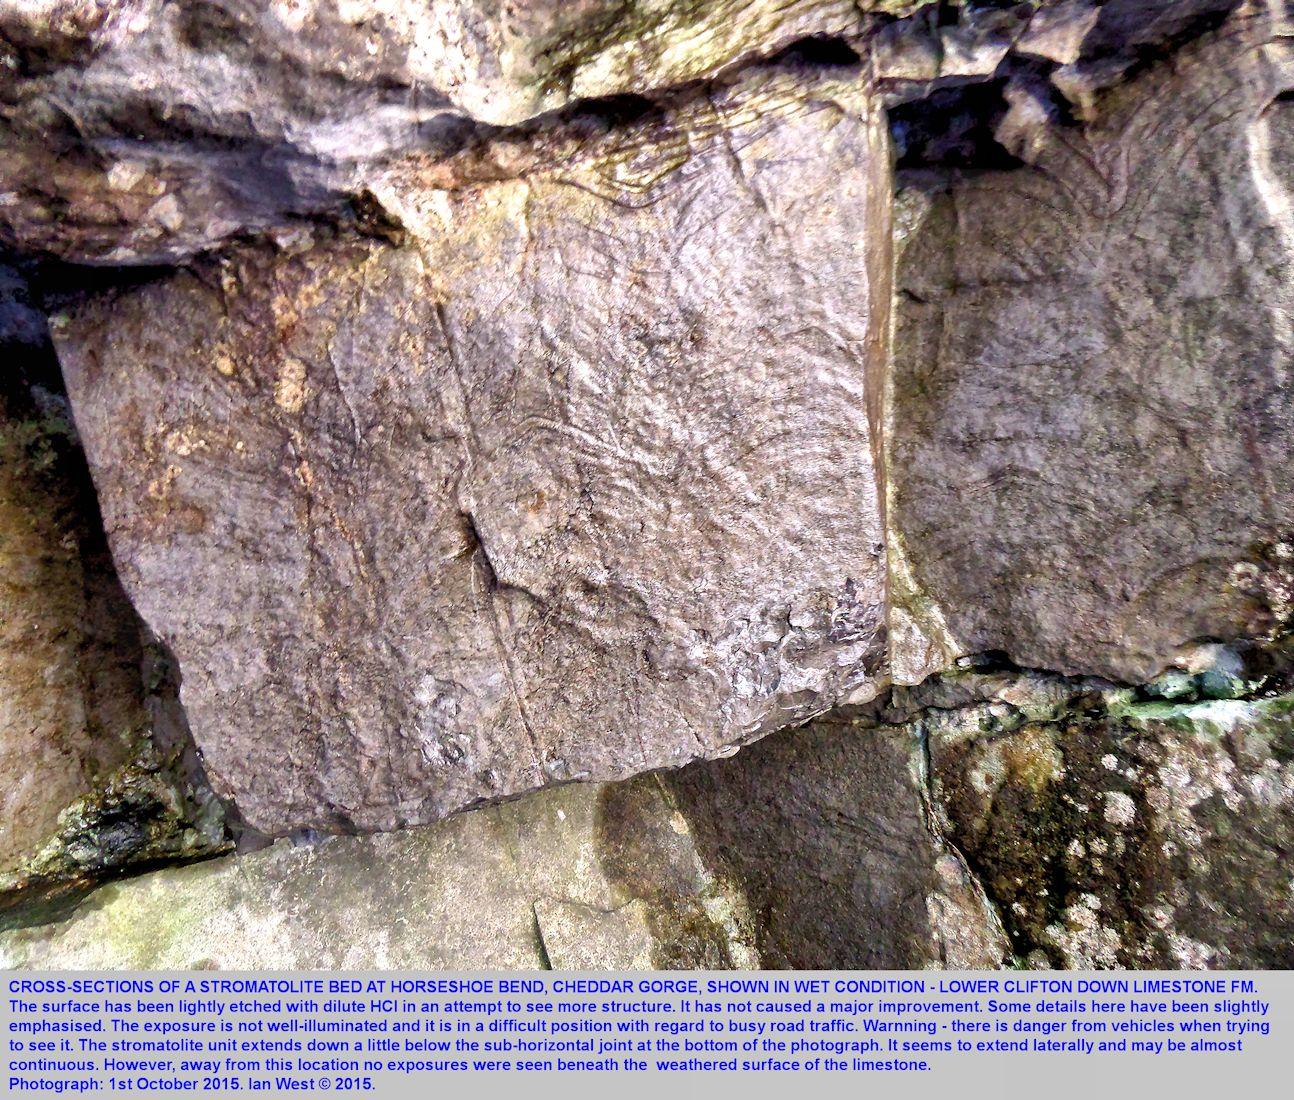 Details of stromatolites in the Lower Clifton Down Limestone Formation at Cheddar Gorge, wet surface after acid etching